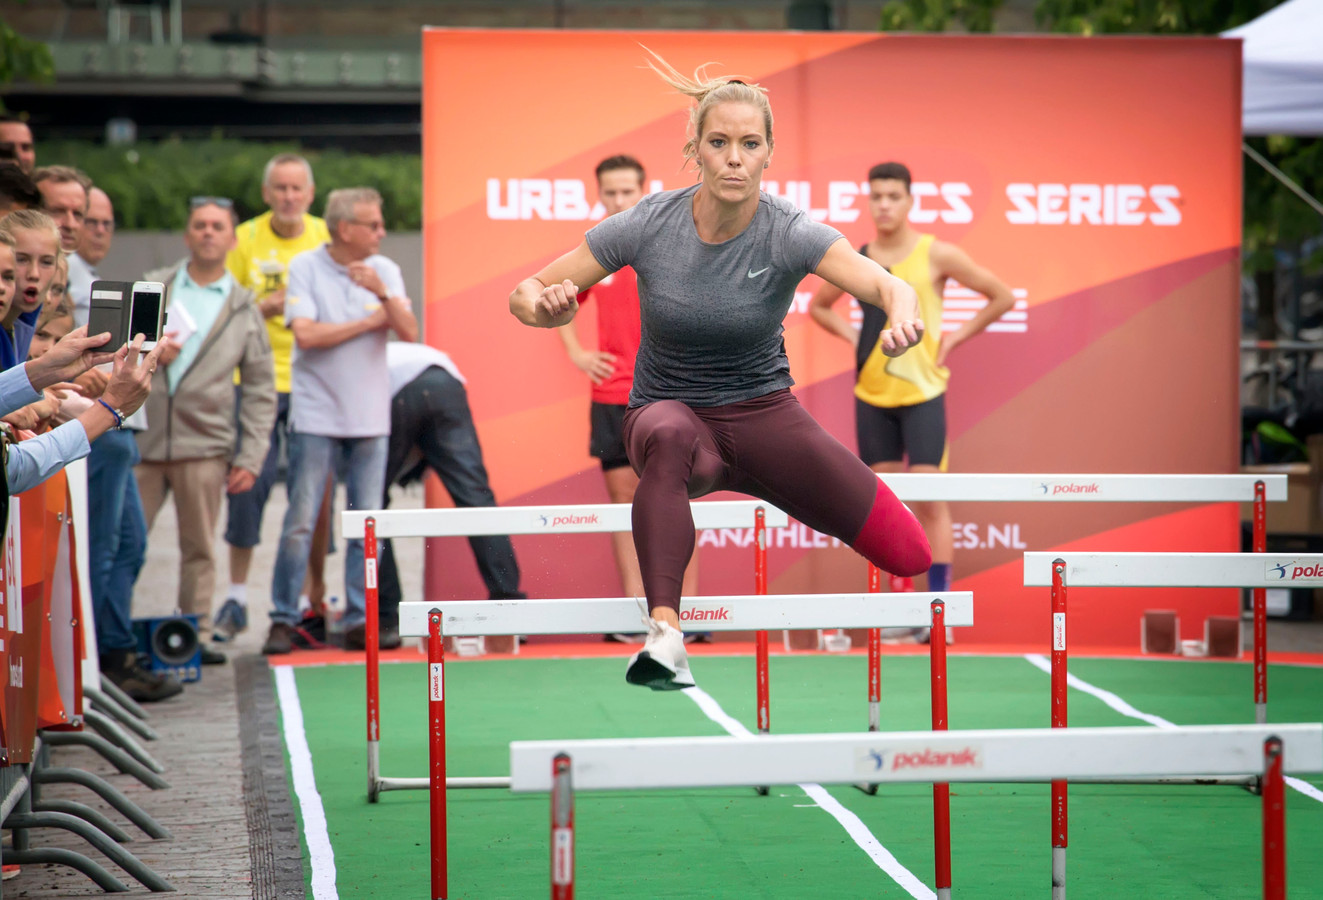 Nadine Broersen geeft een demonstratie bij Urban Athletics in de Willemstraat in Breda.